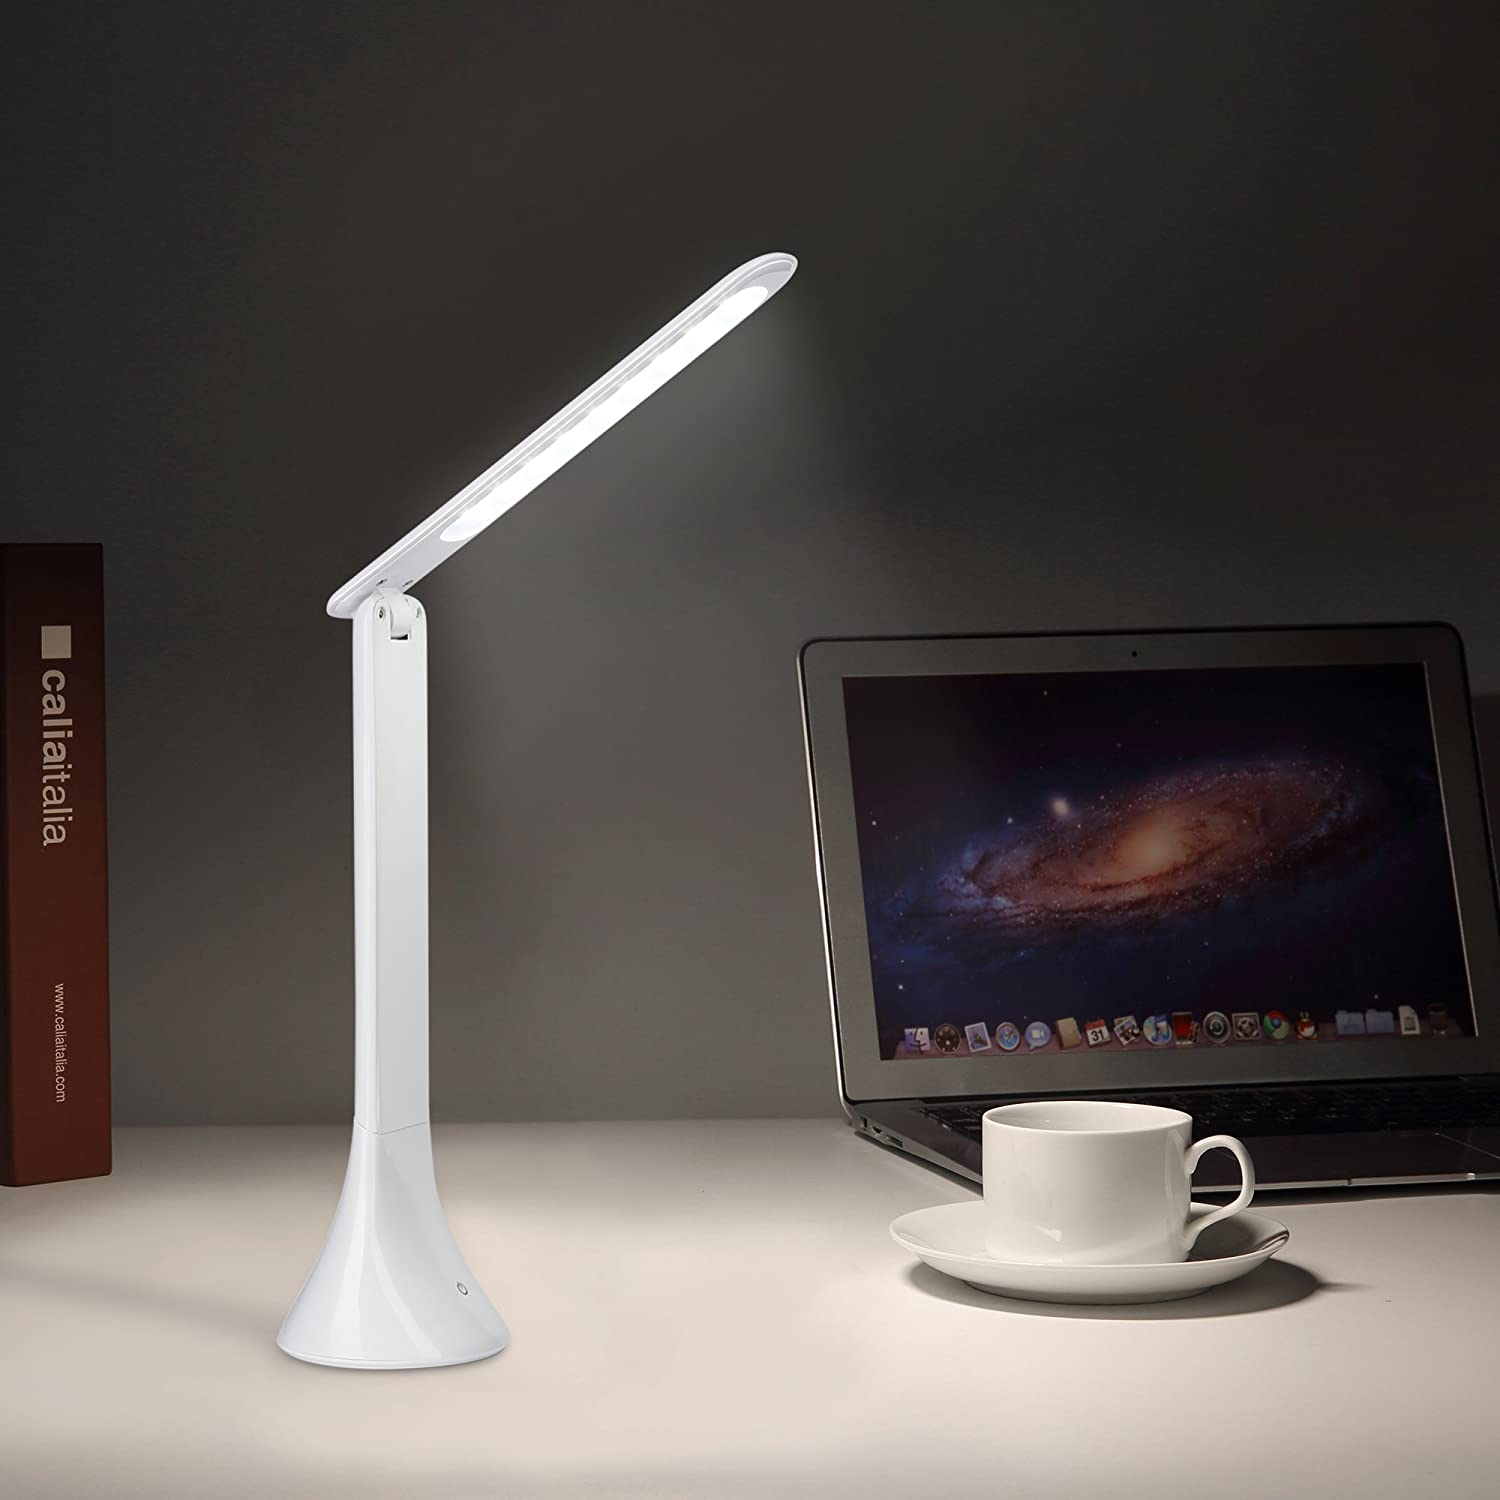 3-Level Reading Lamp ICOCO Dimmable Eye-caring Table Lamp with Touch Control White Portable LED Desk Lamp Mood Light with USB Cable